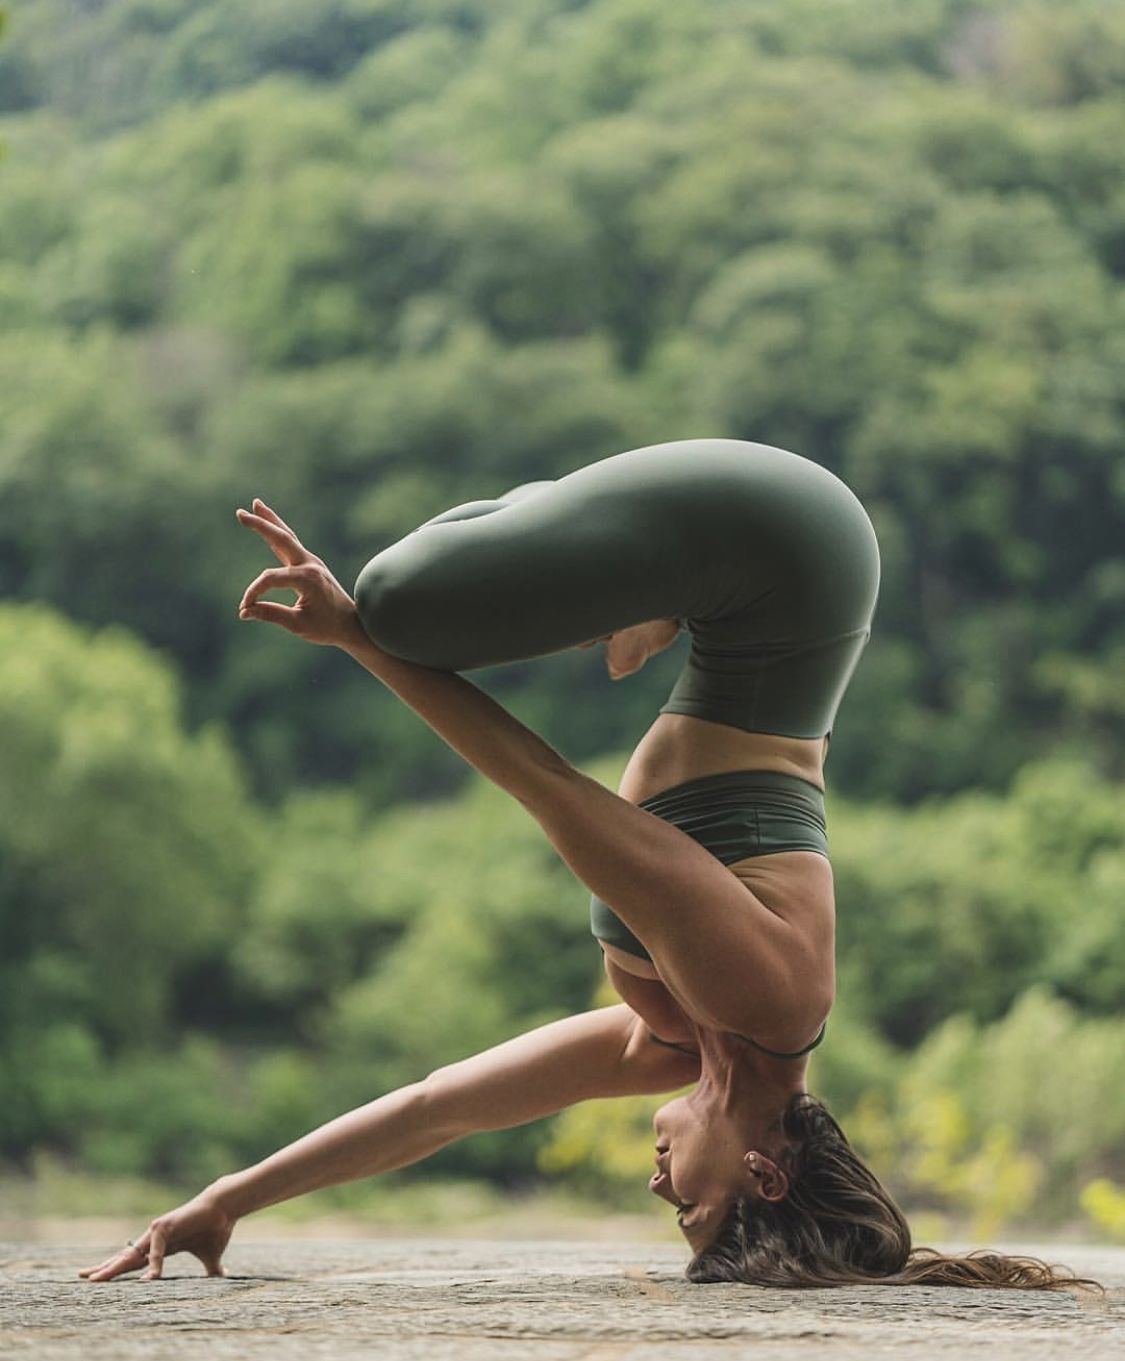 Pin by opil on Yoga inspiration Yoga poses, Hot yoga